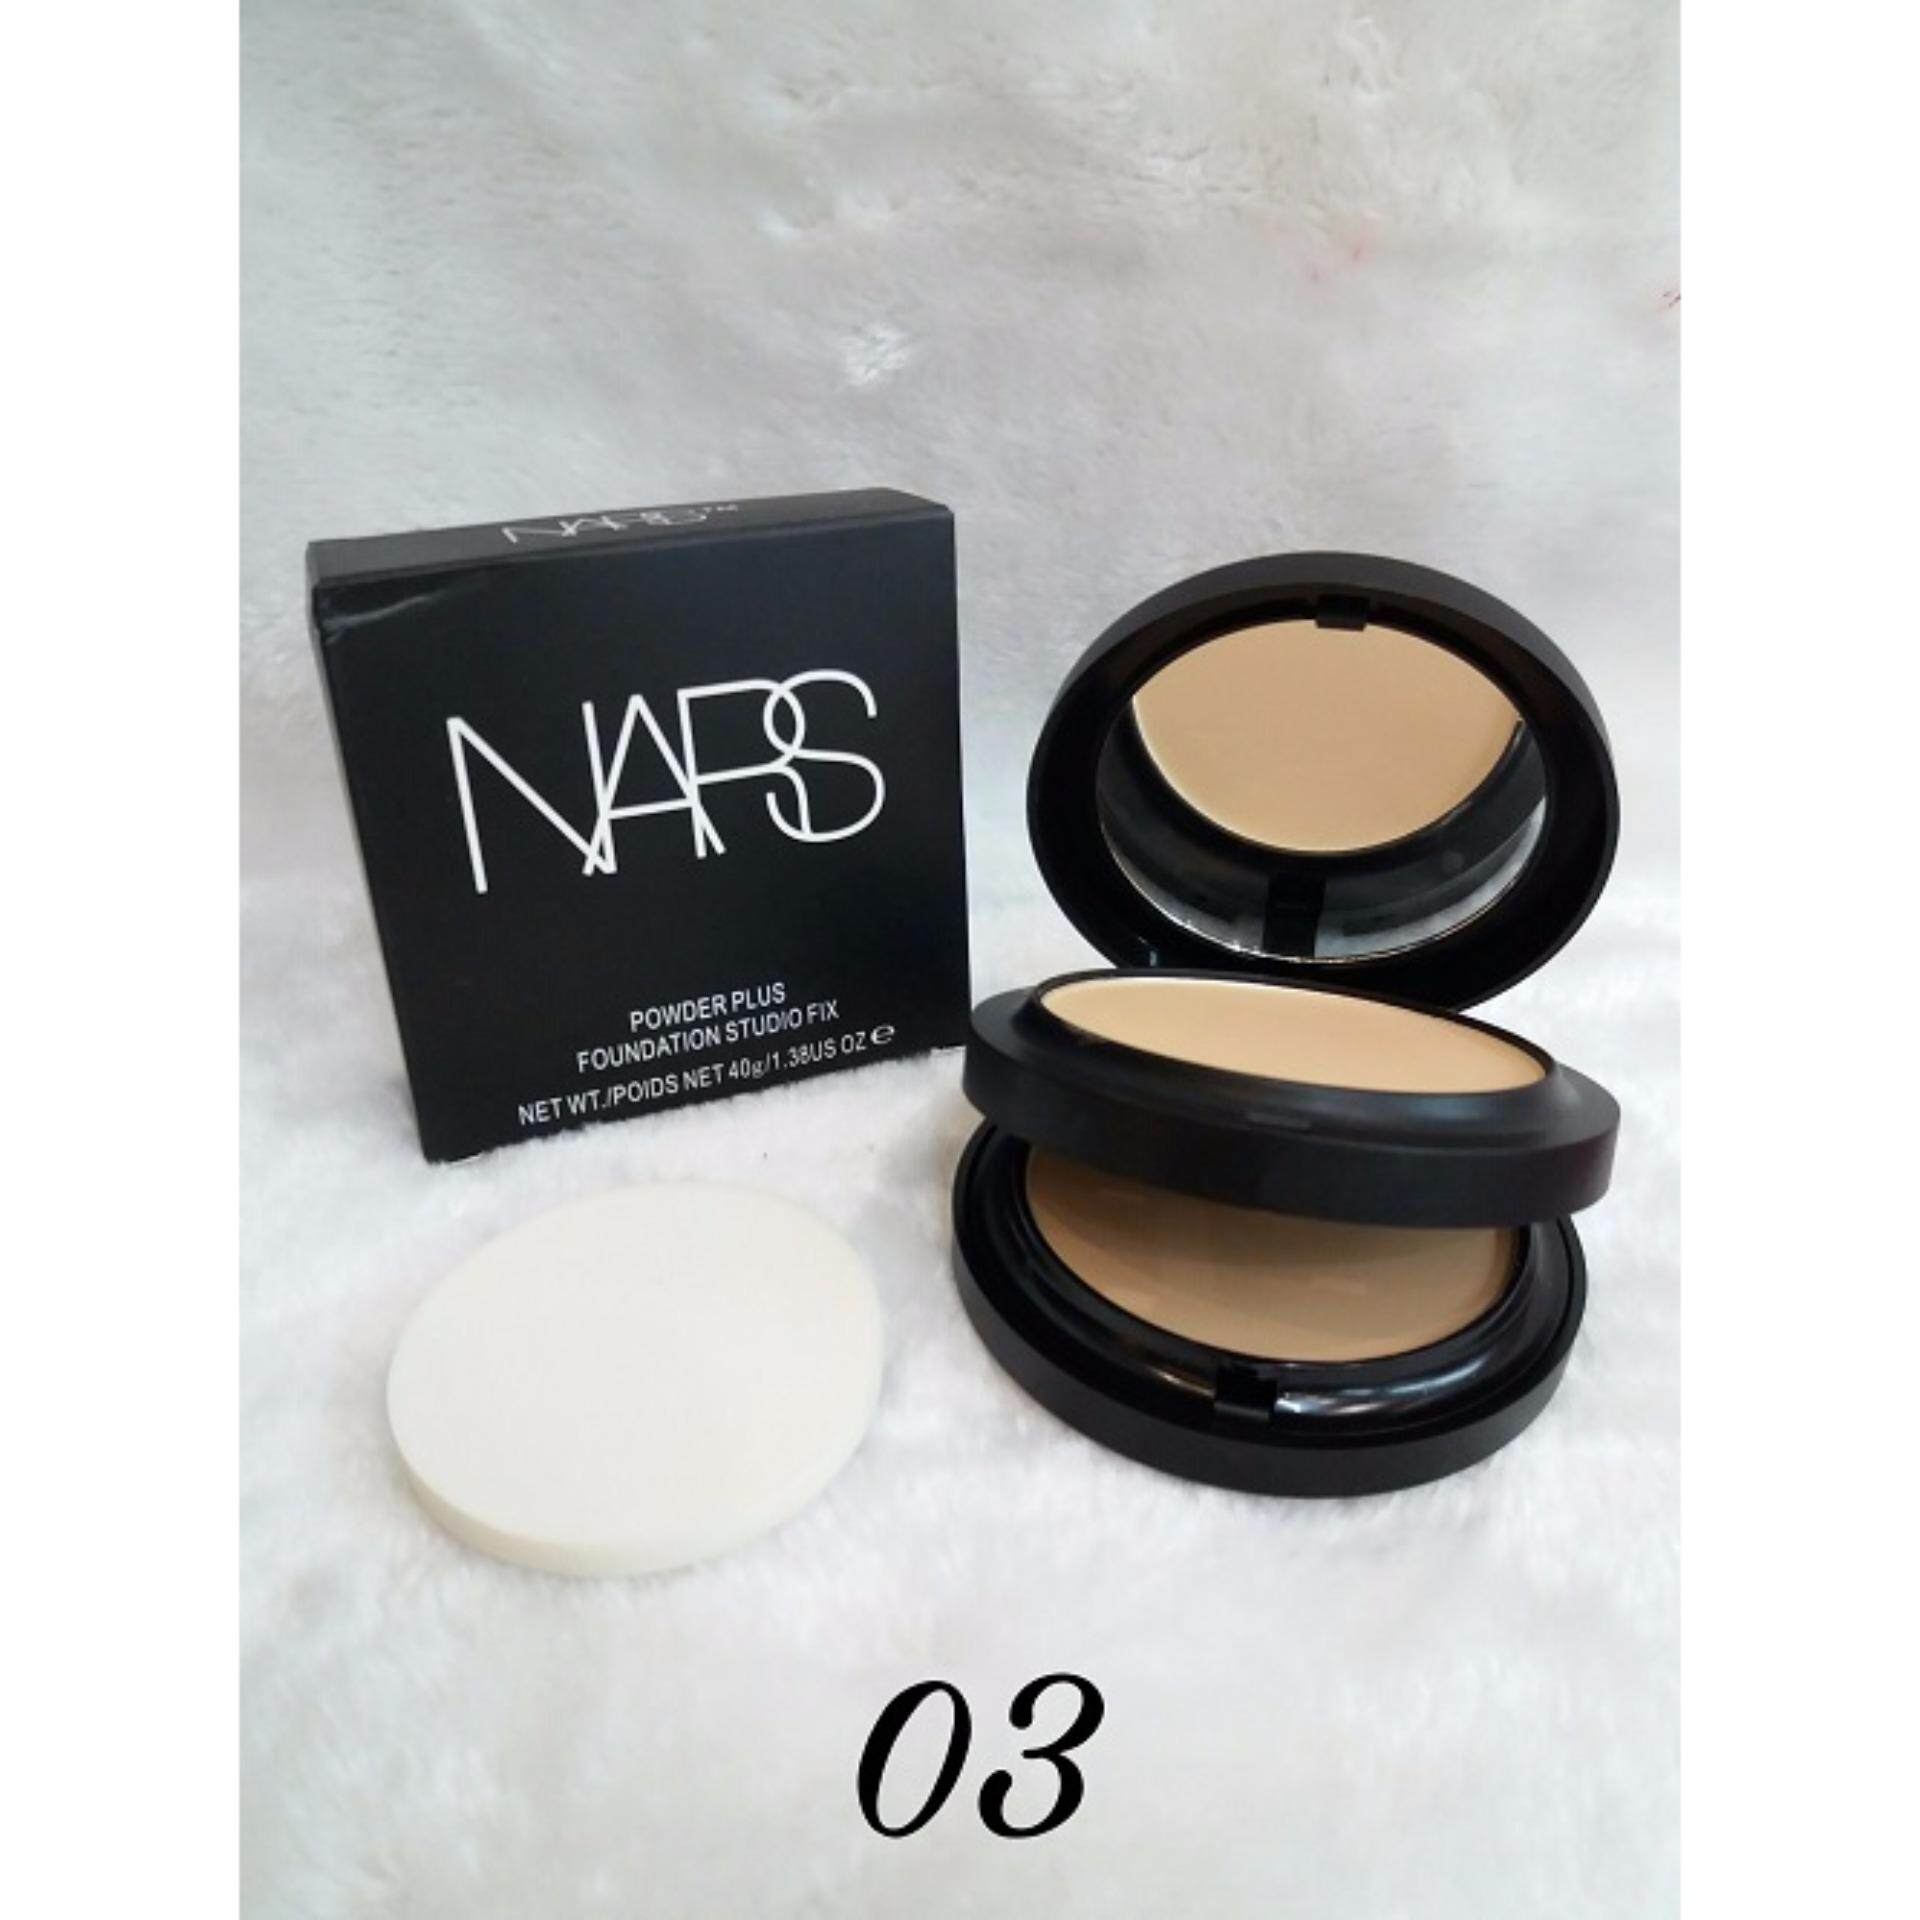 Value Buy Two Way Cake Nars Cosmetics Makeup Double Layer Oil Pixy Compact Powder Control Face Foundation